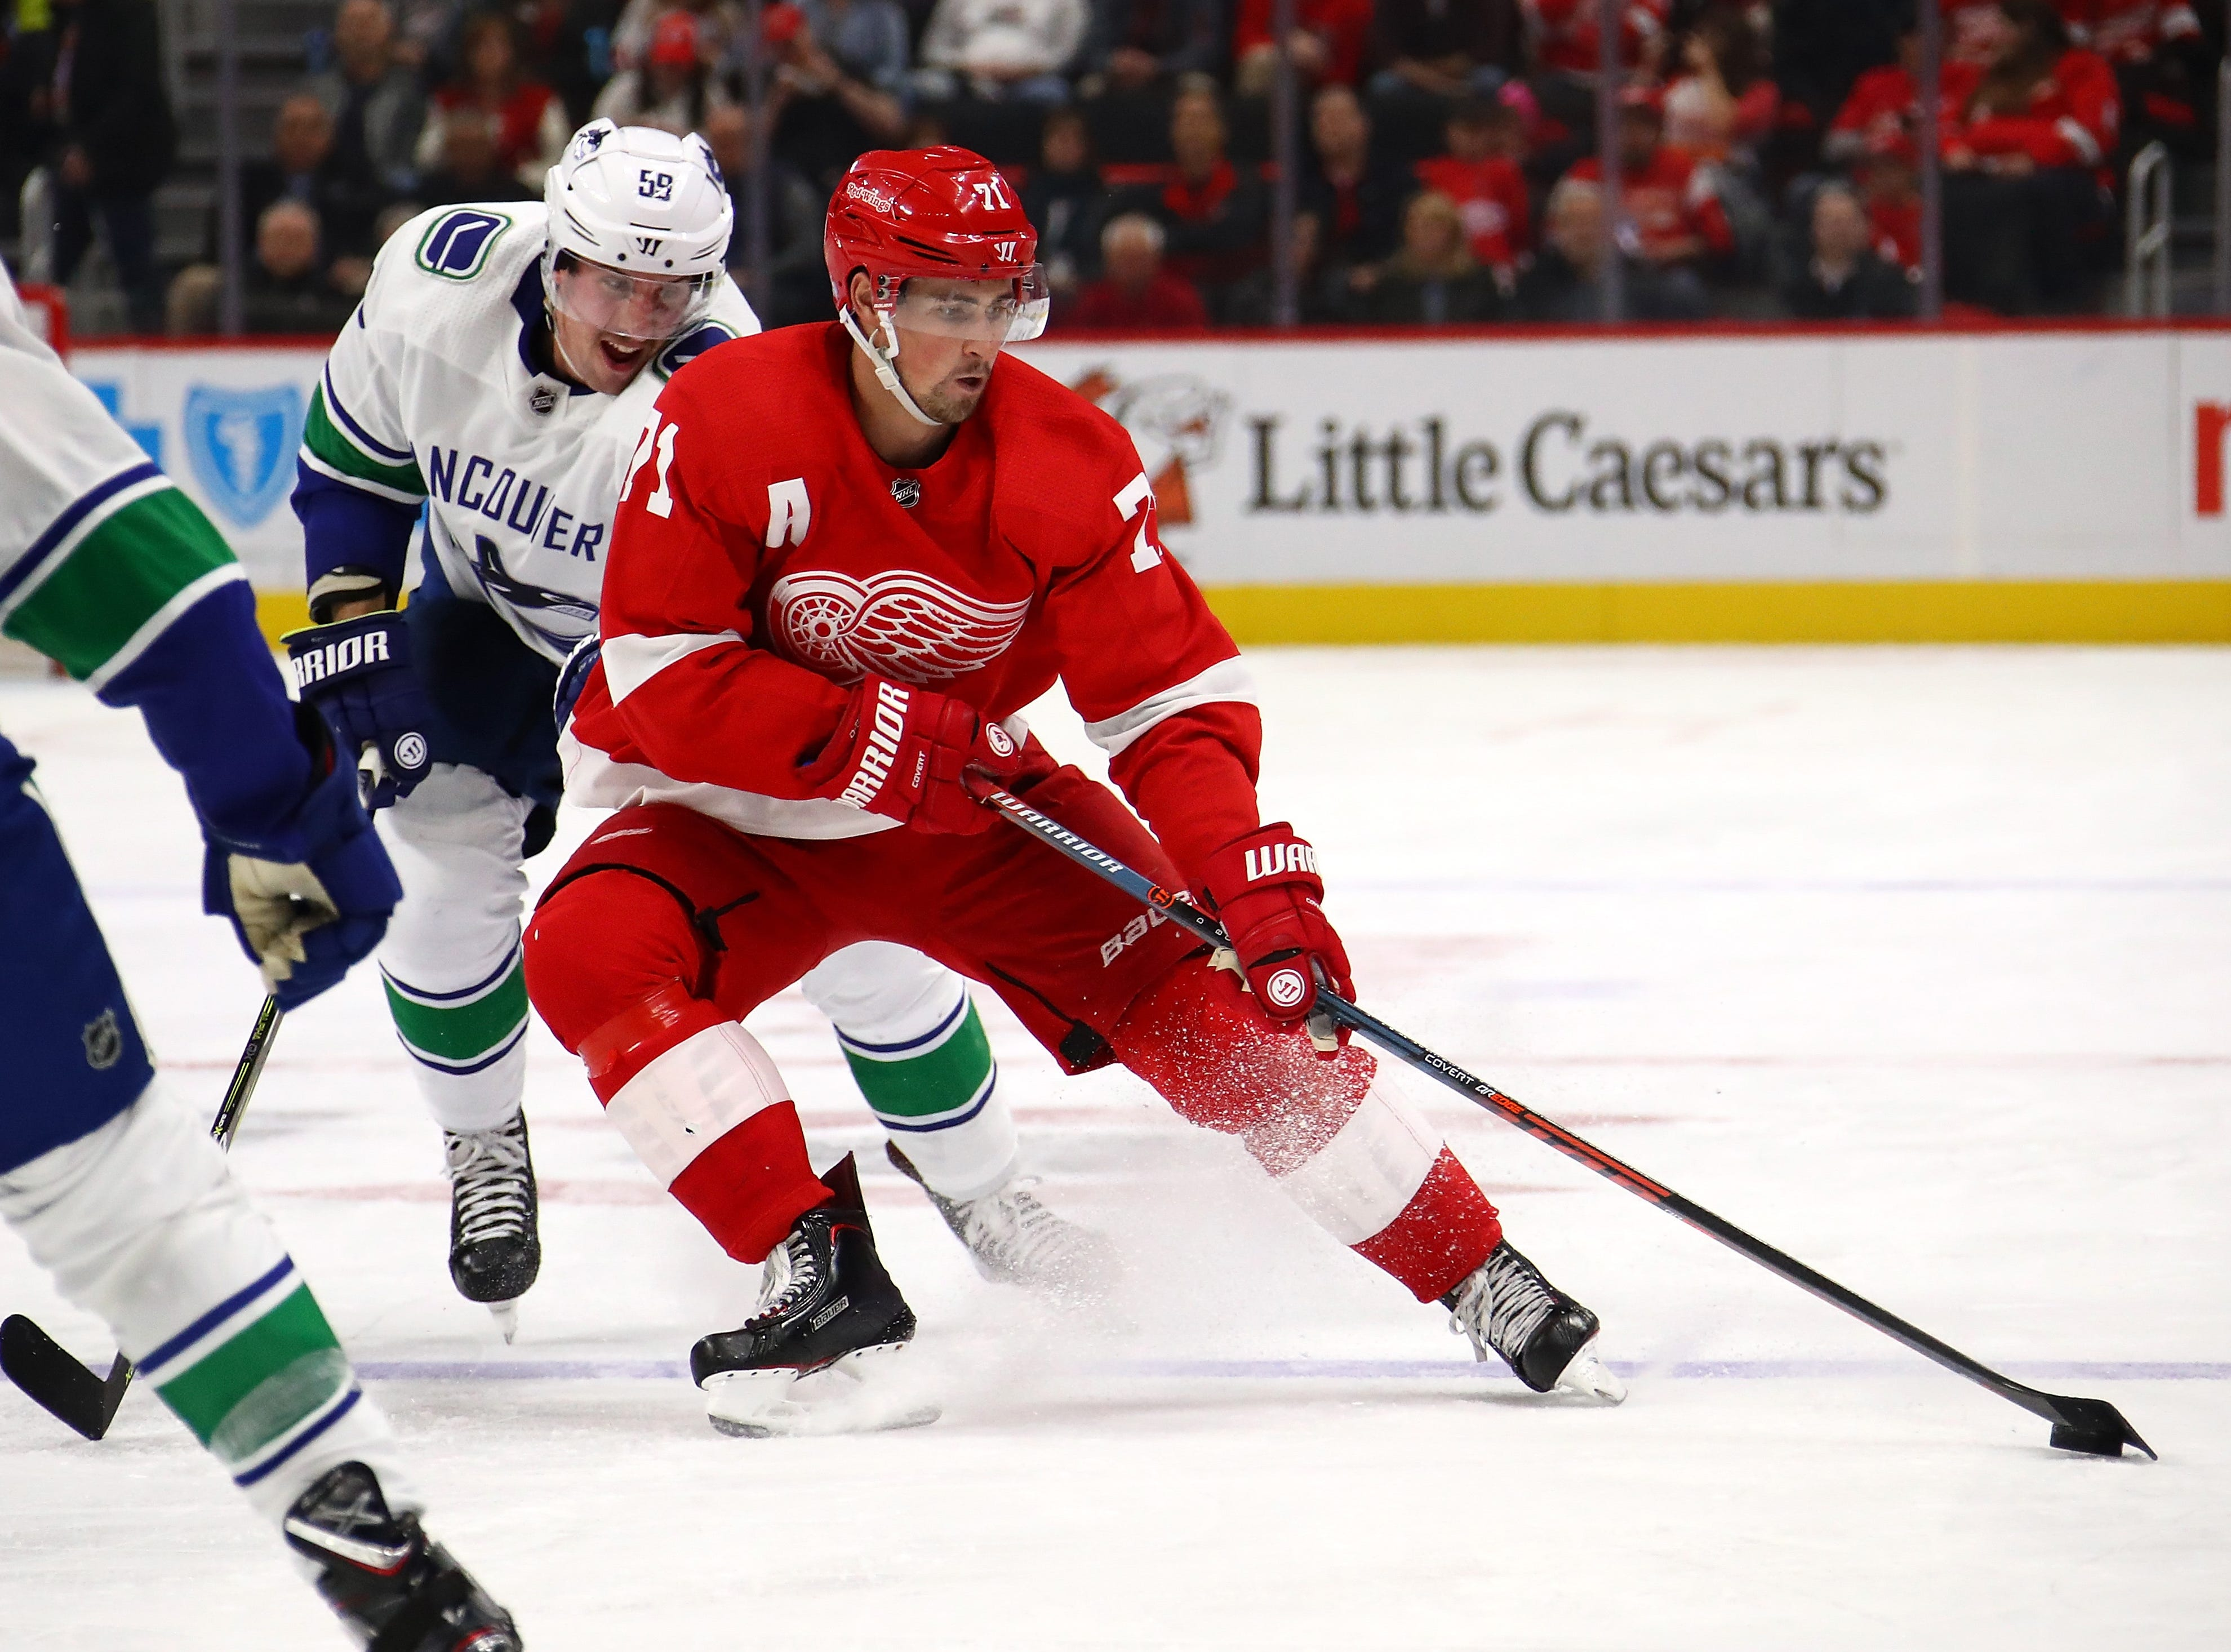 Dylan Larkin (71) of the Detroit Red Wings tries to control the puck in front of Tim Schaller (59) of the Vancouver Canucks during the second period at Little Caesars Arena on November 06, 2018 in Detroit, Michigan.